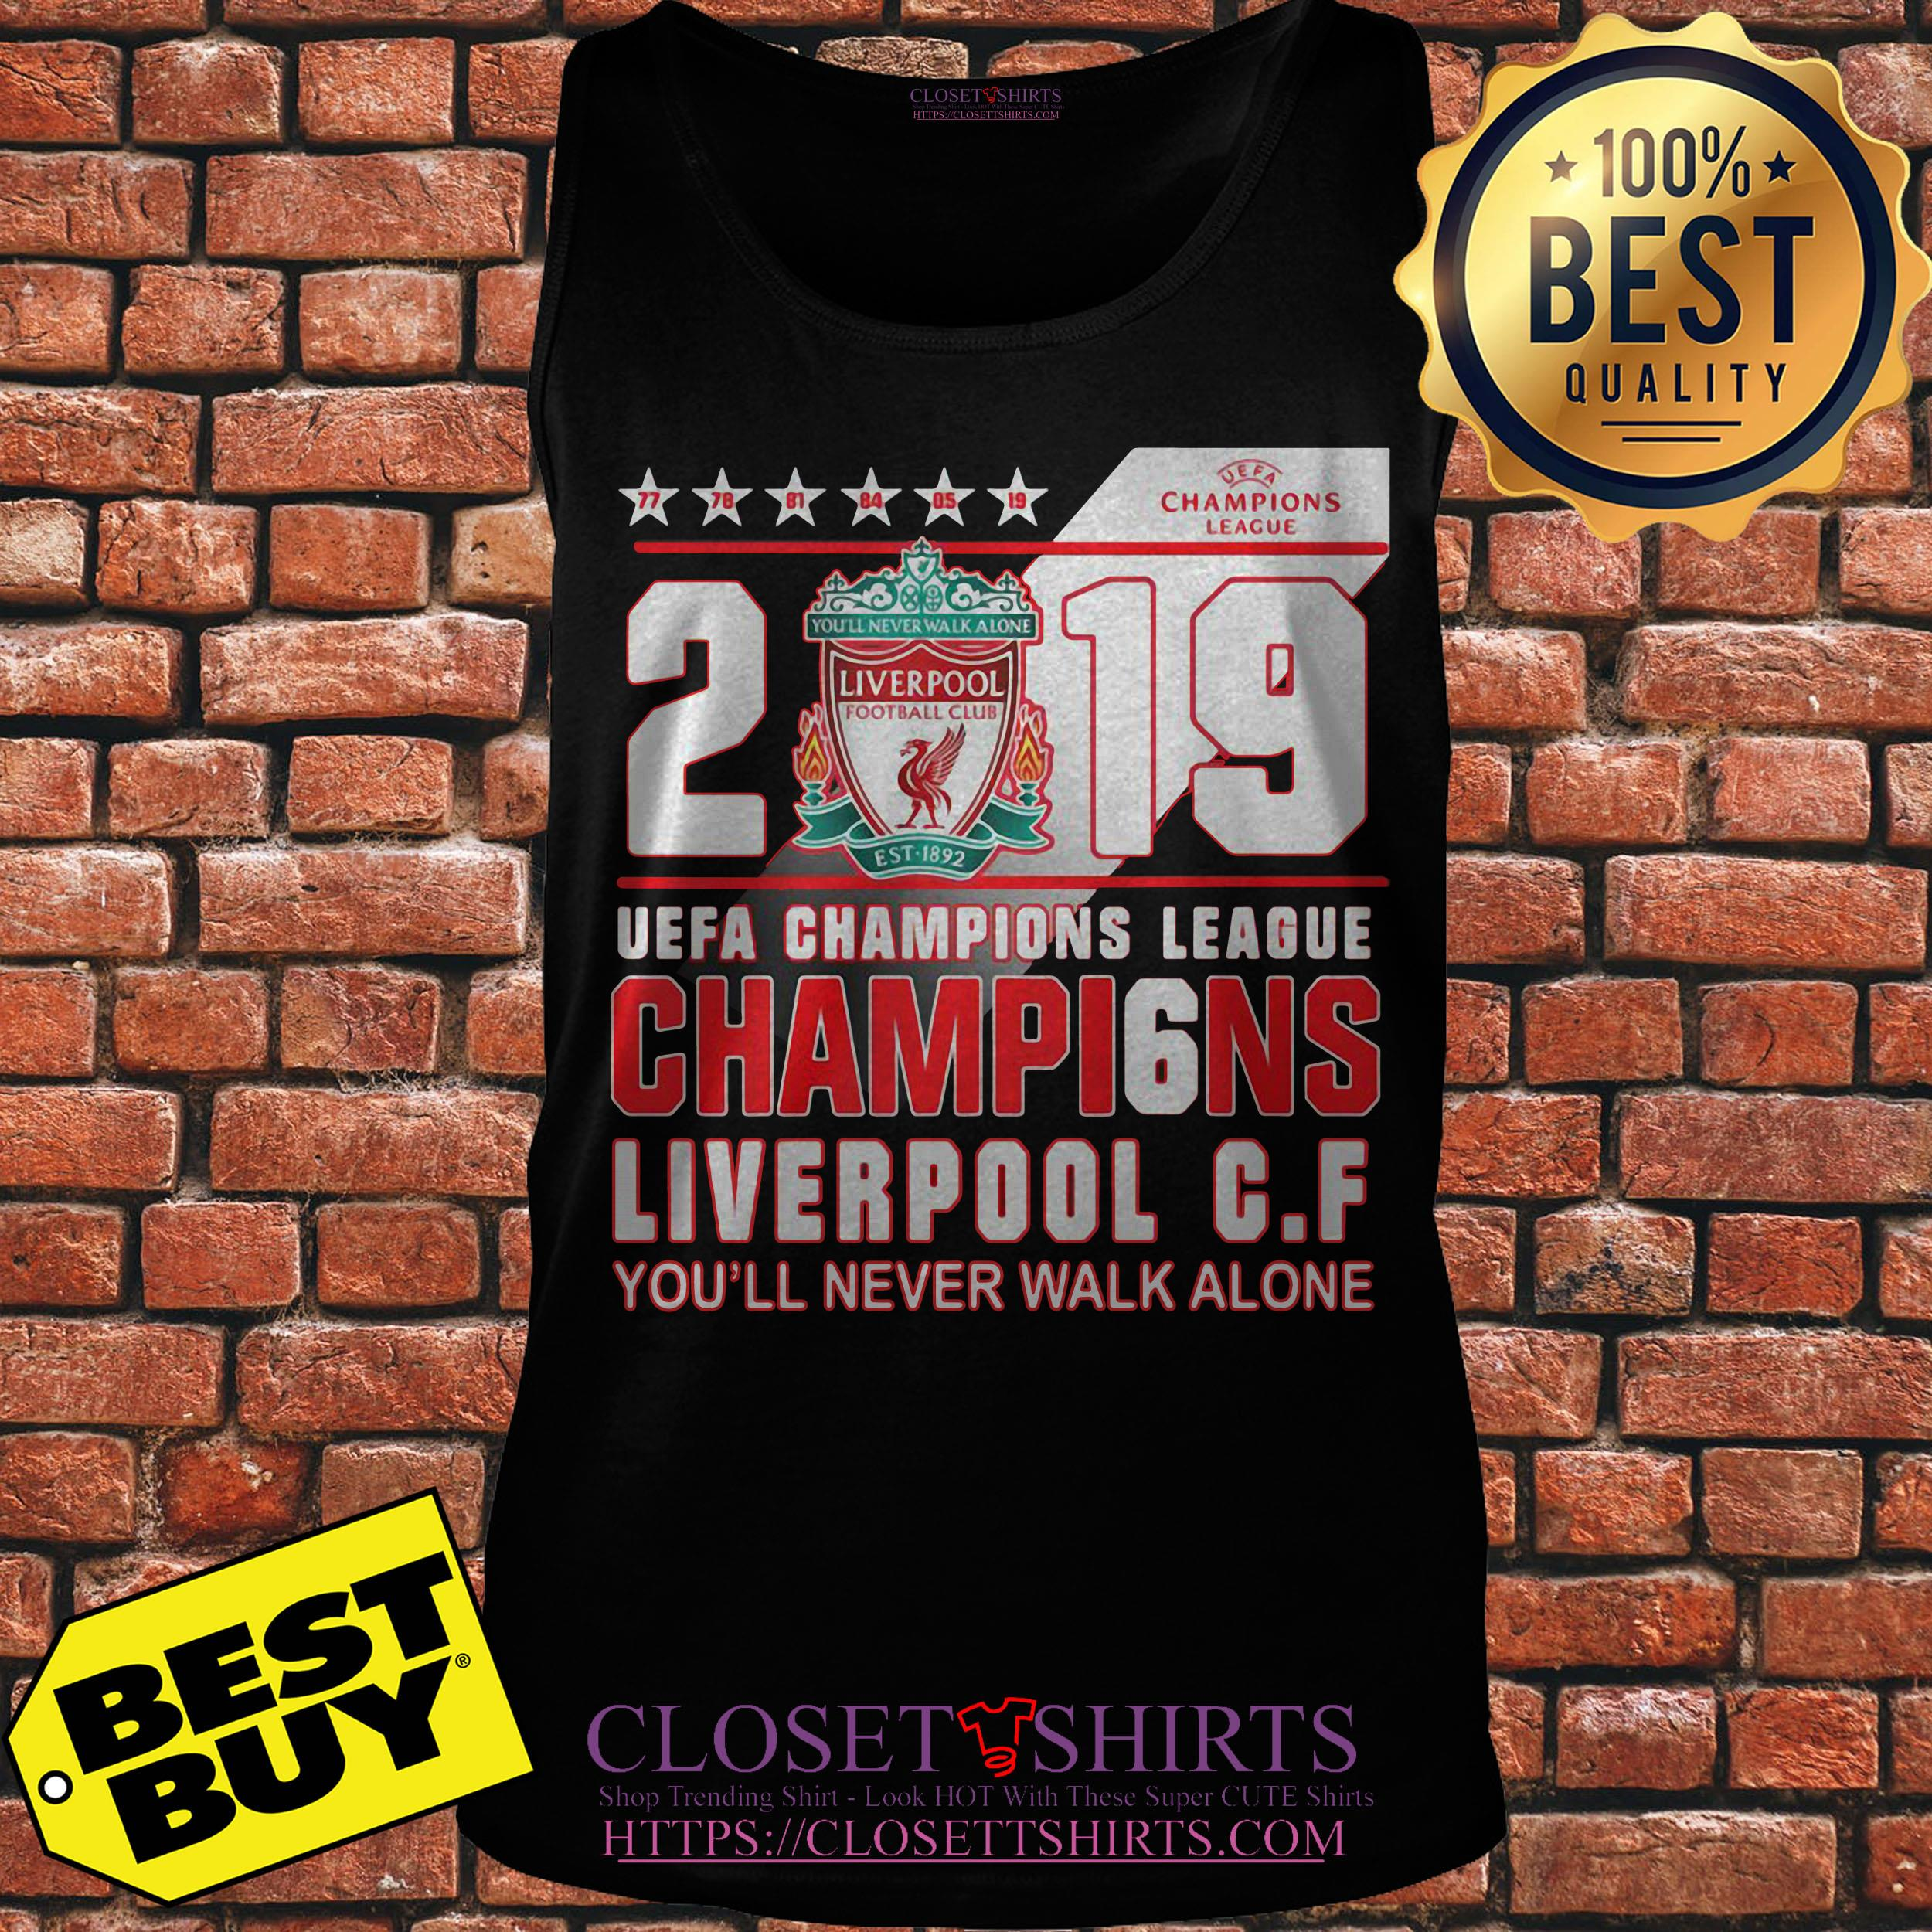 2019 Uefa Champions League Champions Liverpool F C Youll Never Walk Alone Tank Top